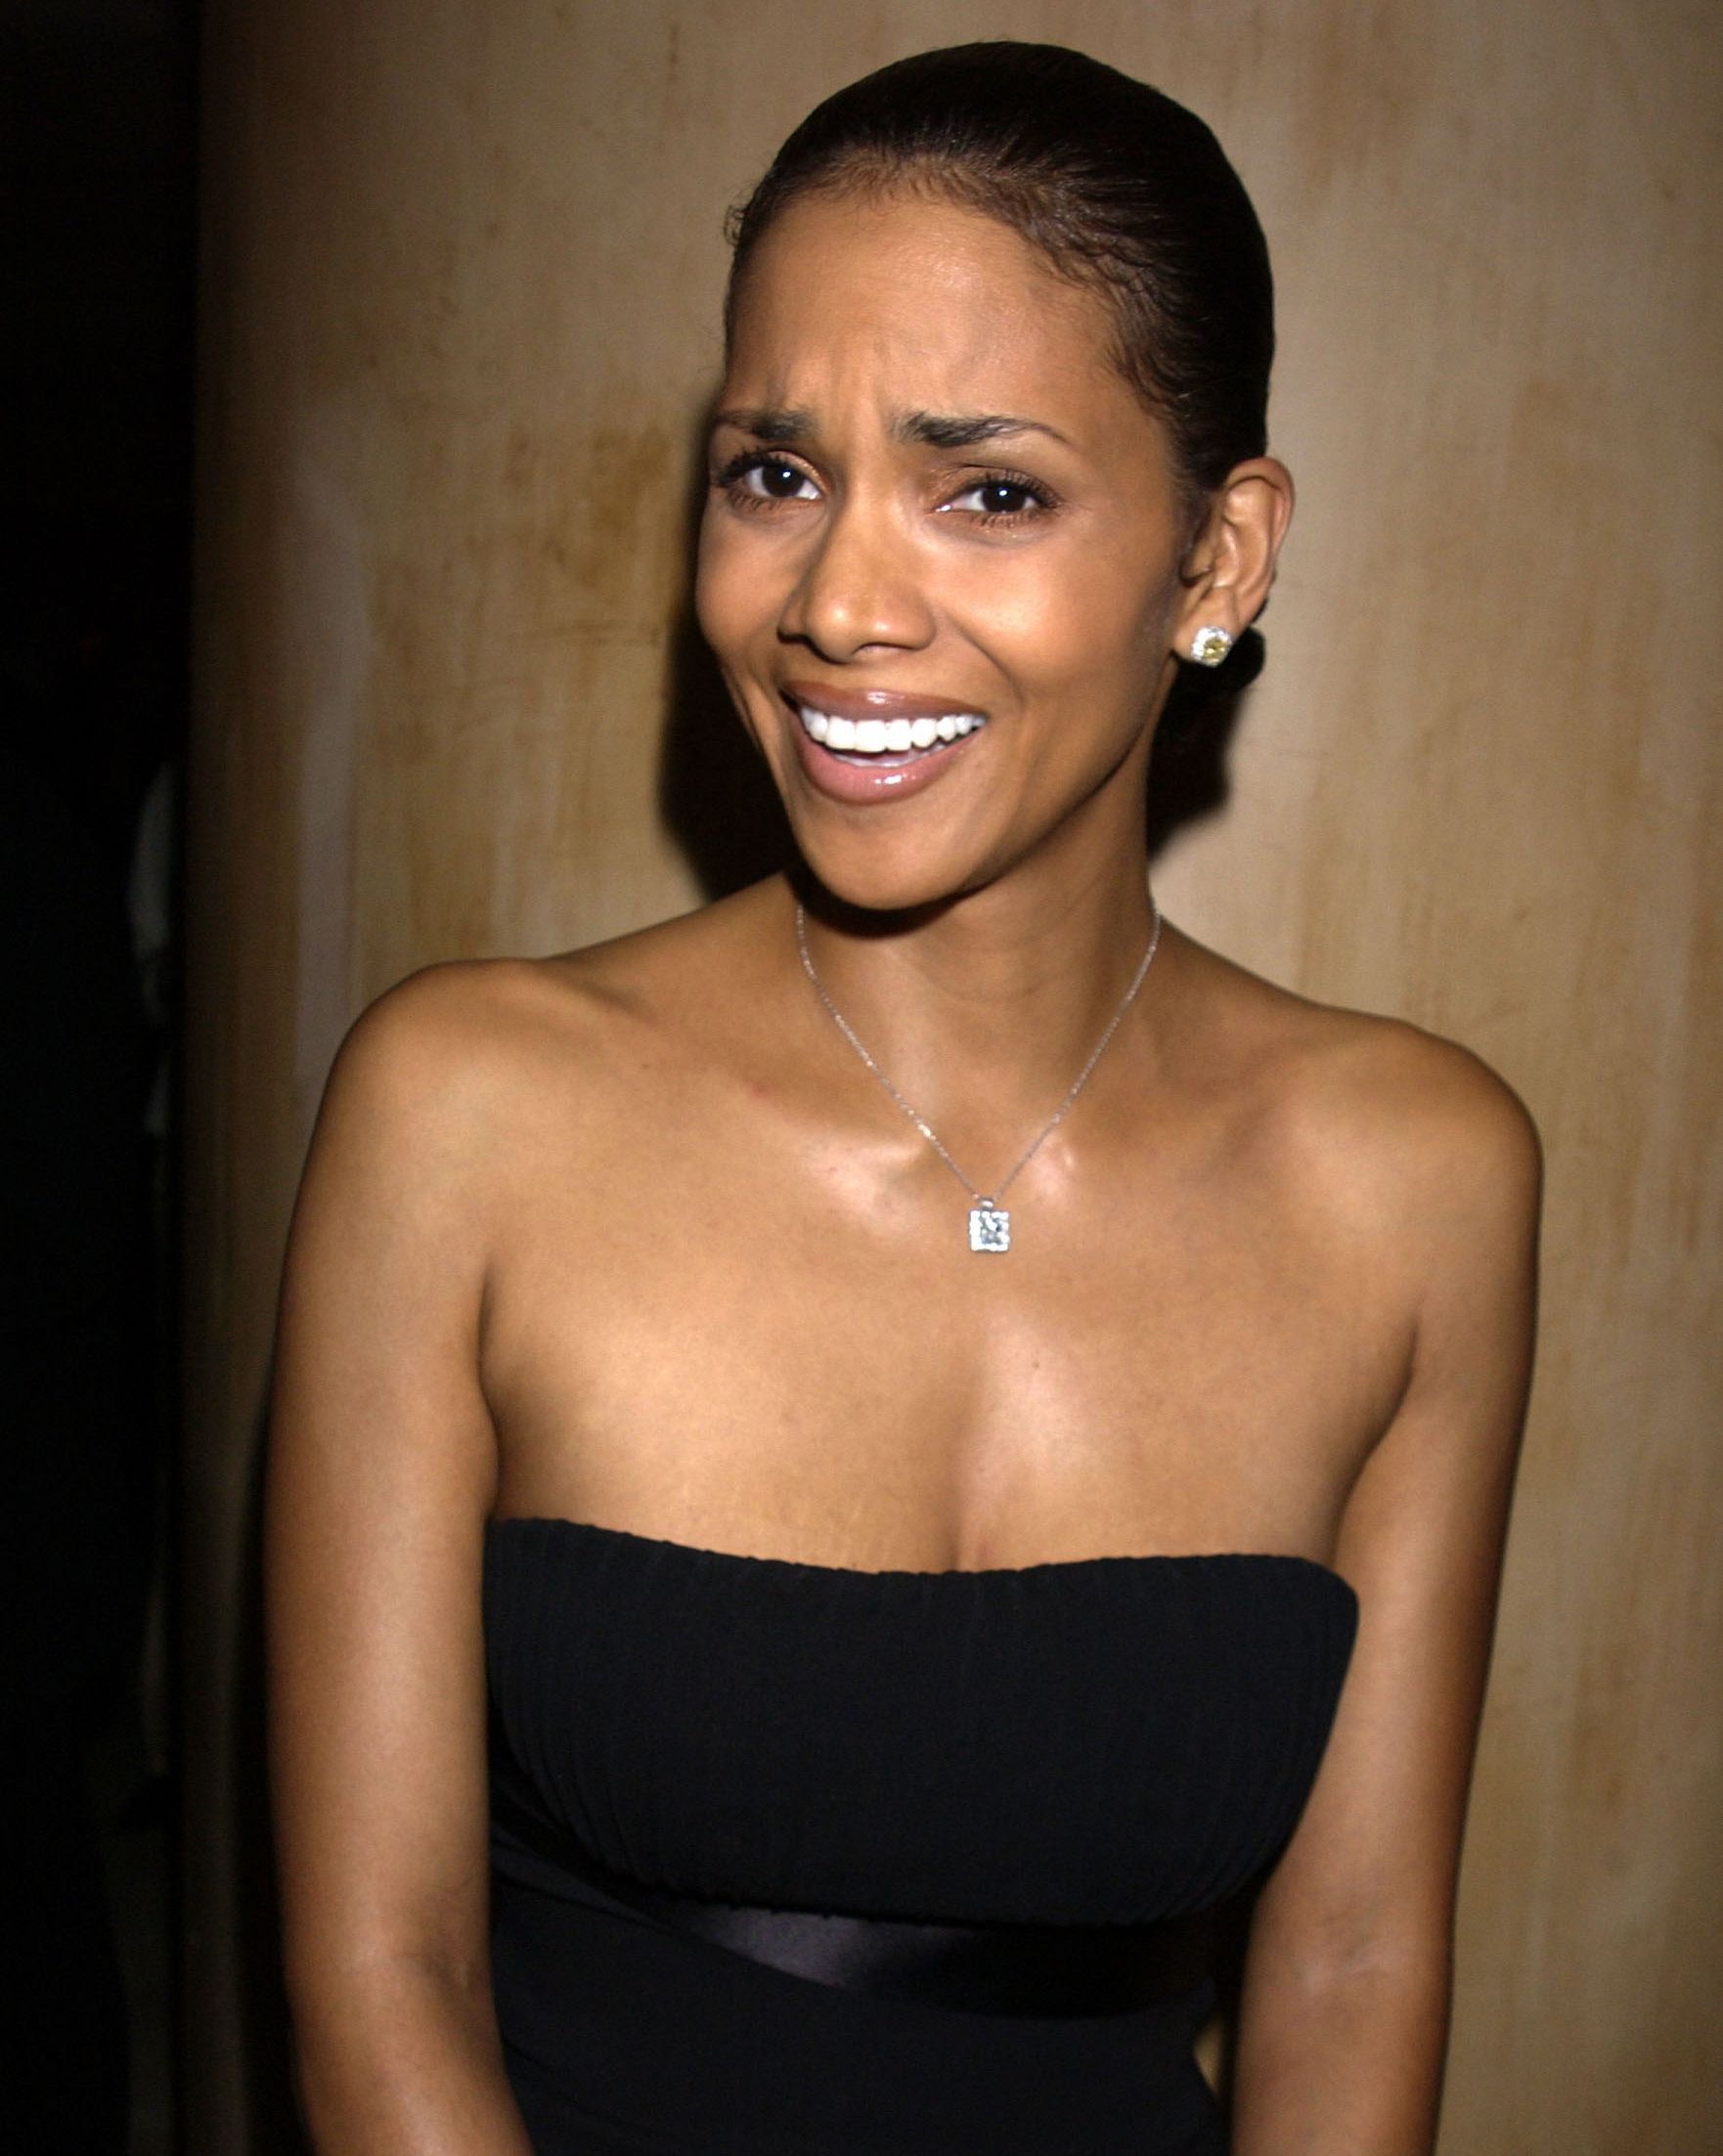 Candidly Beautiful I like to think Halle was caught in a moment of flattery when this photo was taken. She was the honoree at the 2002 Make-A-Wish Foundation Gala.